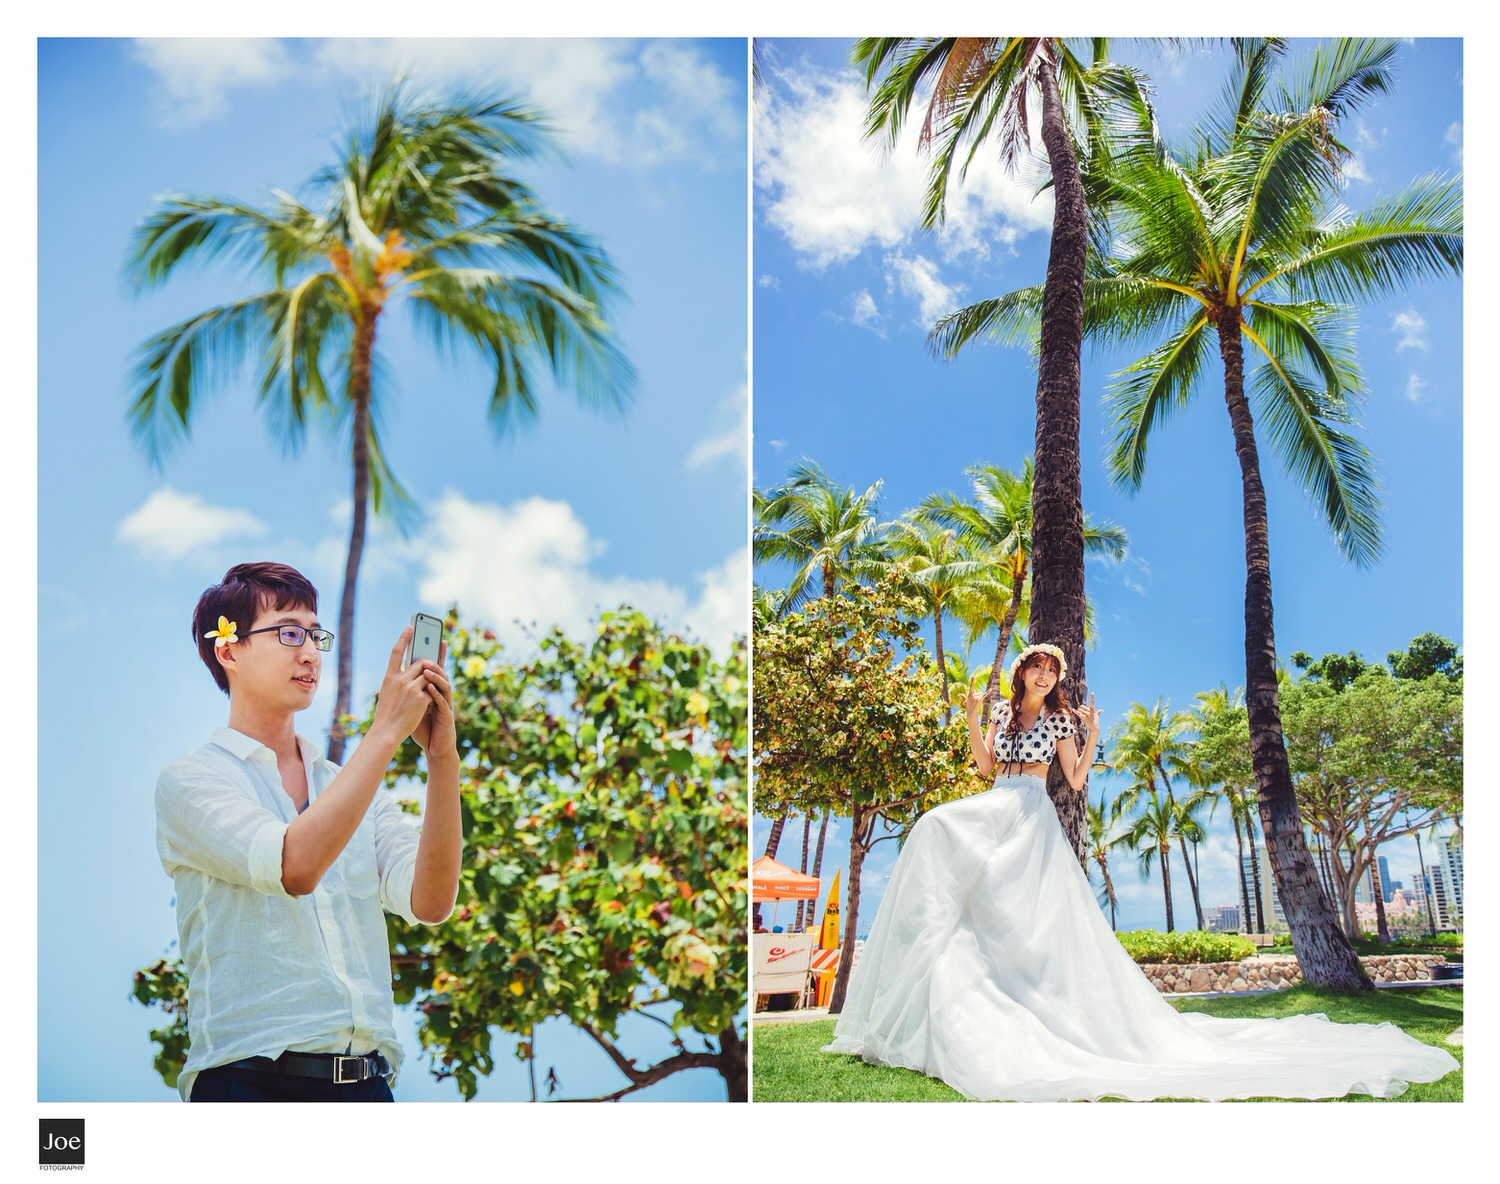 064-waikiki-beach-hawaii-pre-wedding-tiffany-tony-joe-fotography.jpg